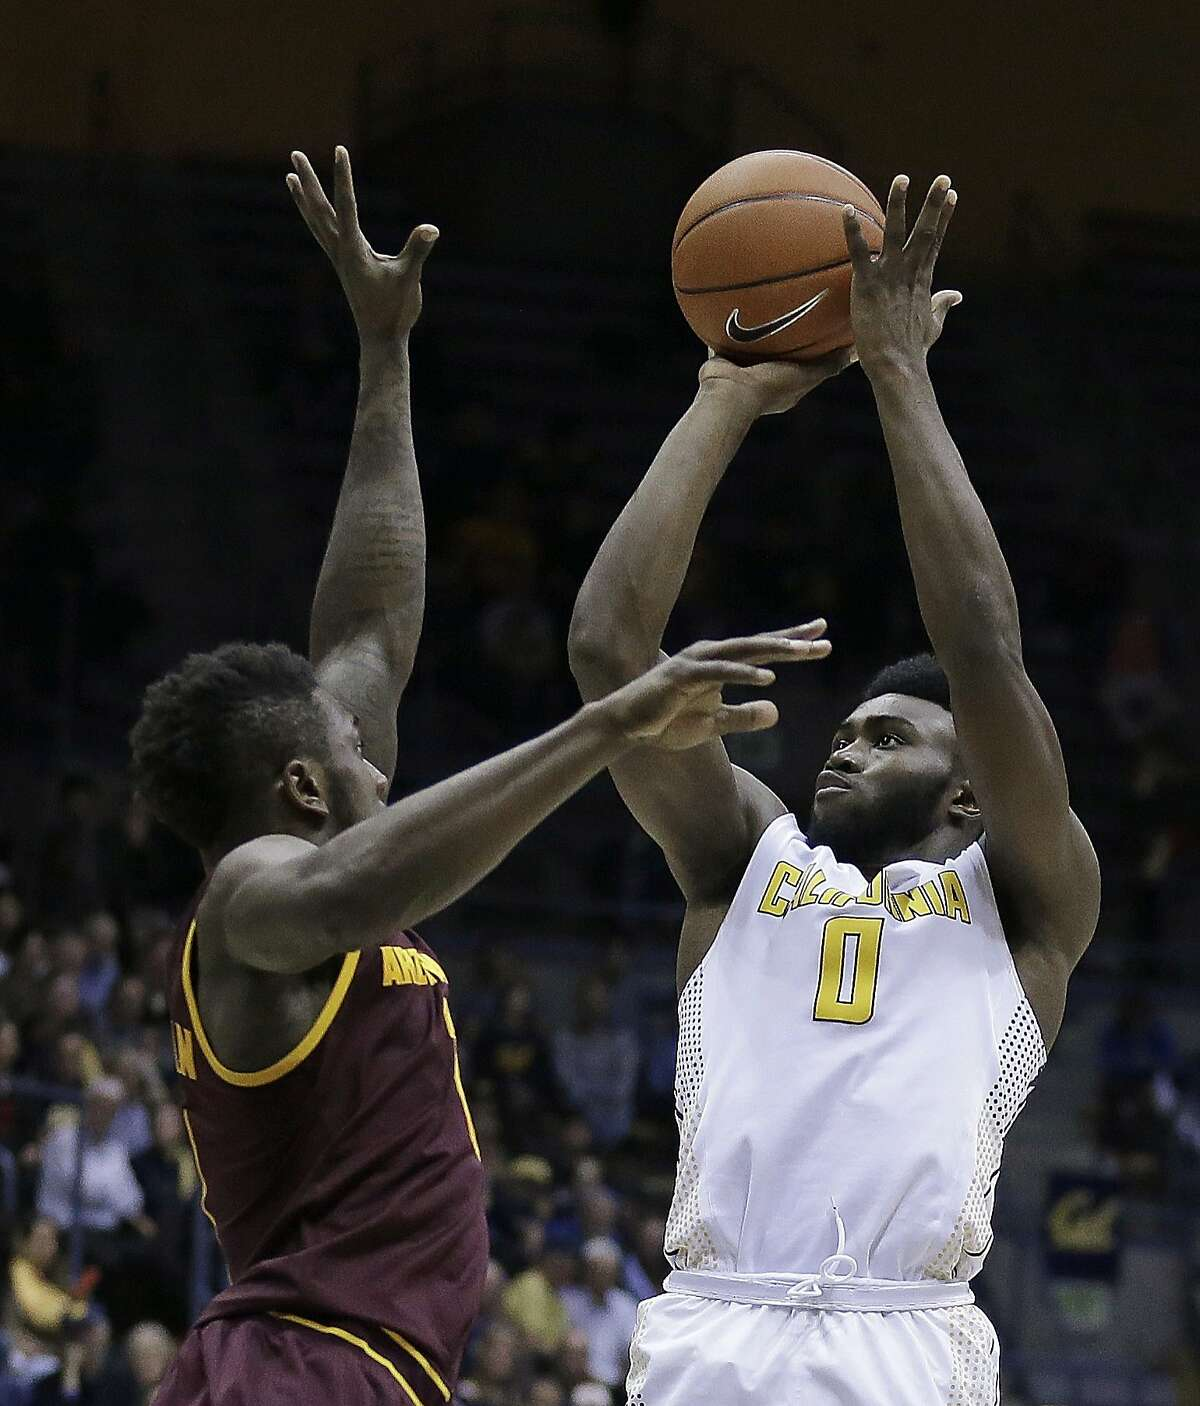 California's Jaylen Brown, right, shoots over Arizona State's Savon Goodman in the second half of an NCAA college basketball game Thursday, Jan. 21, 2016, in Berkeley, Calif.